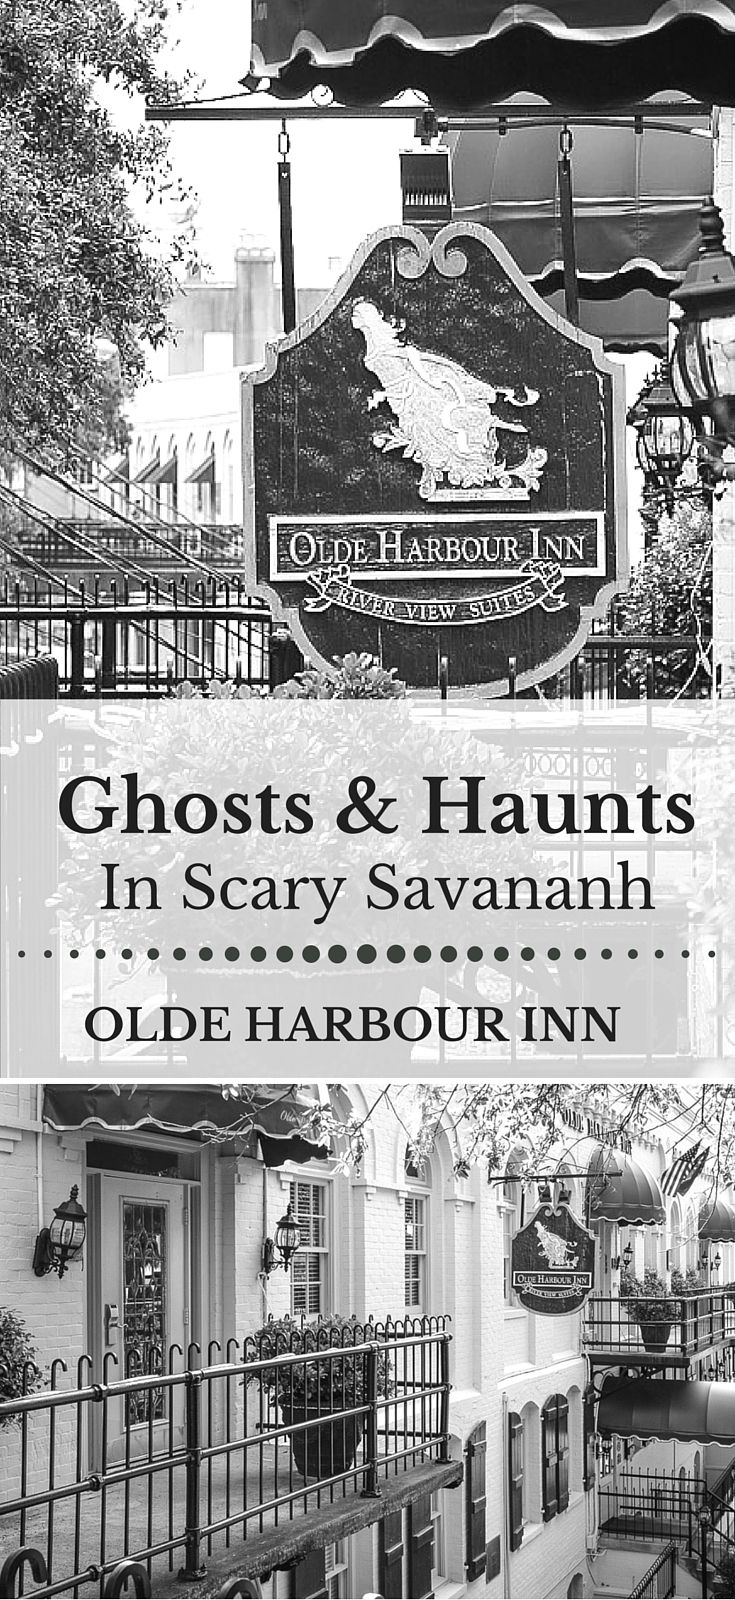 Haunted Hotels in Savannah, GA - Haunted Savannah Ghost Tours